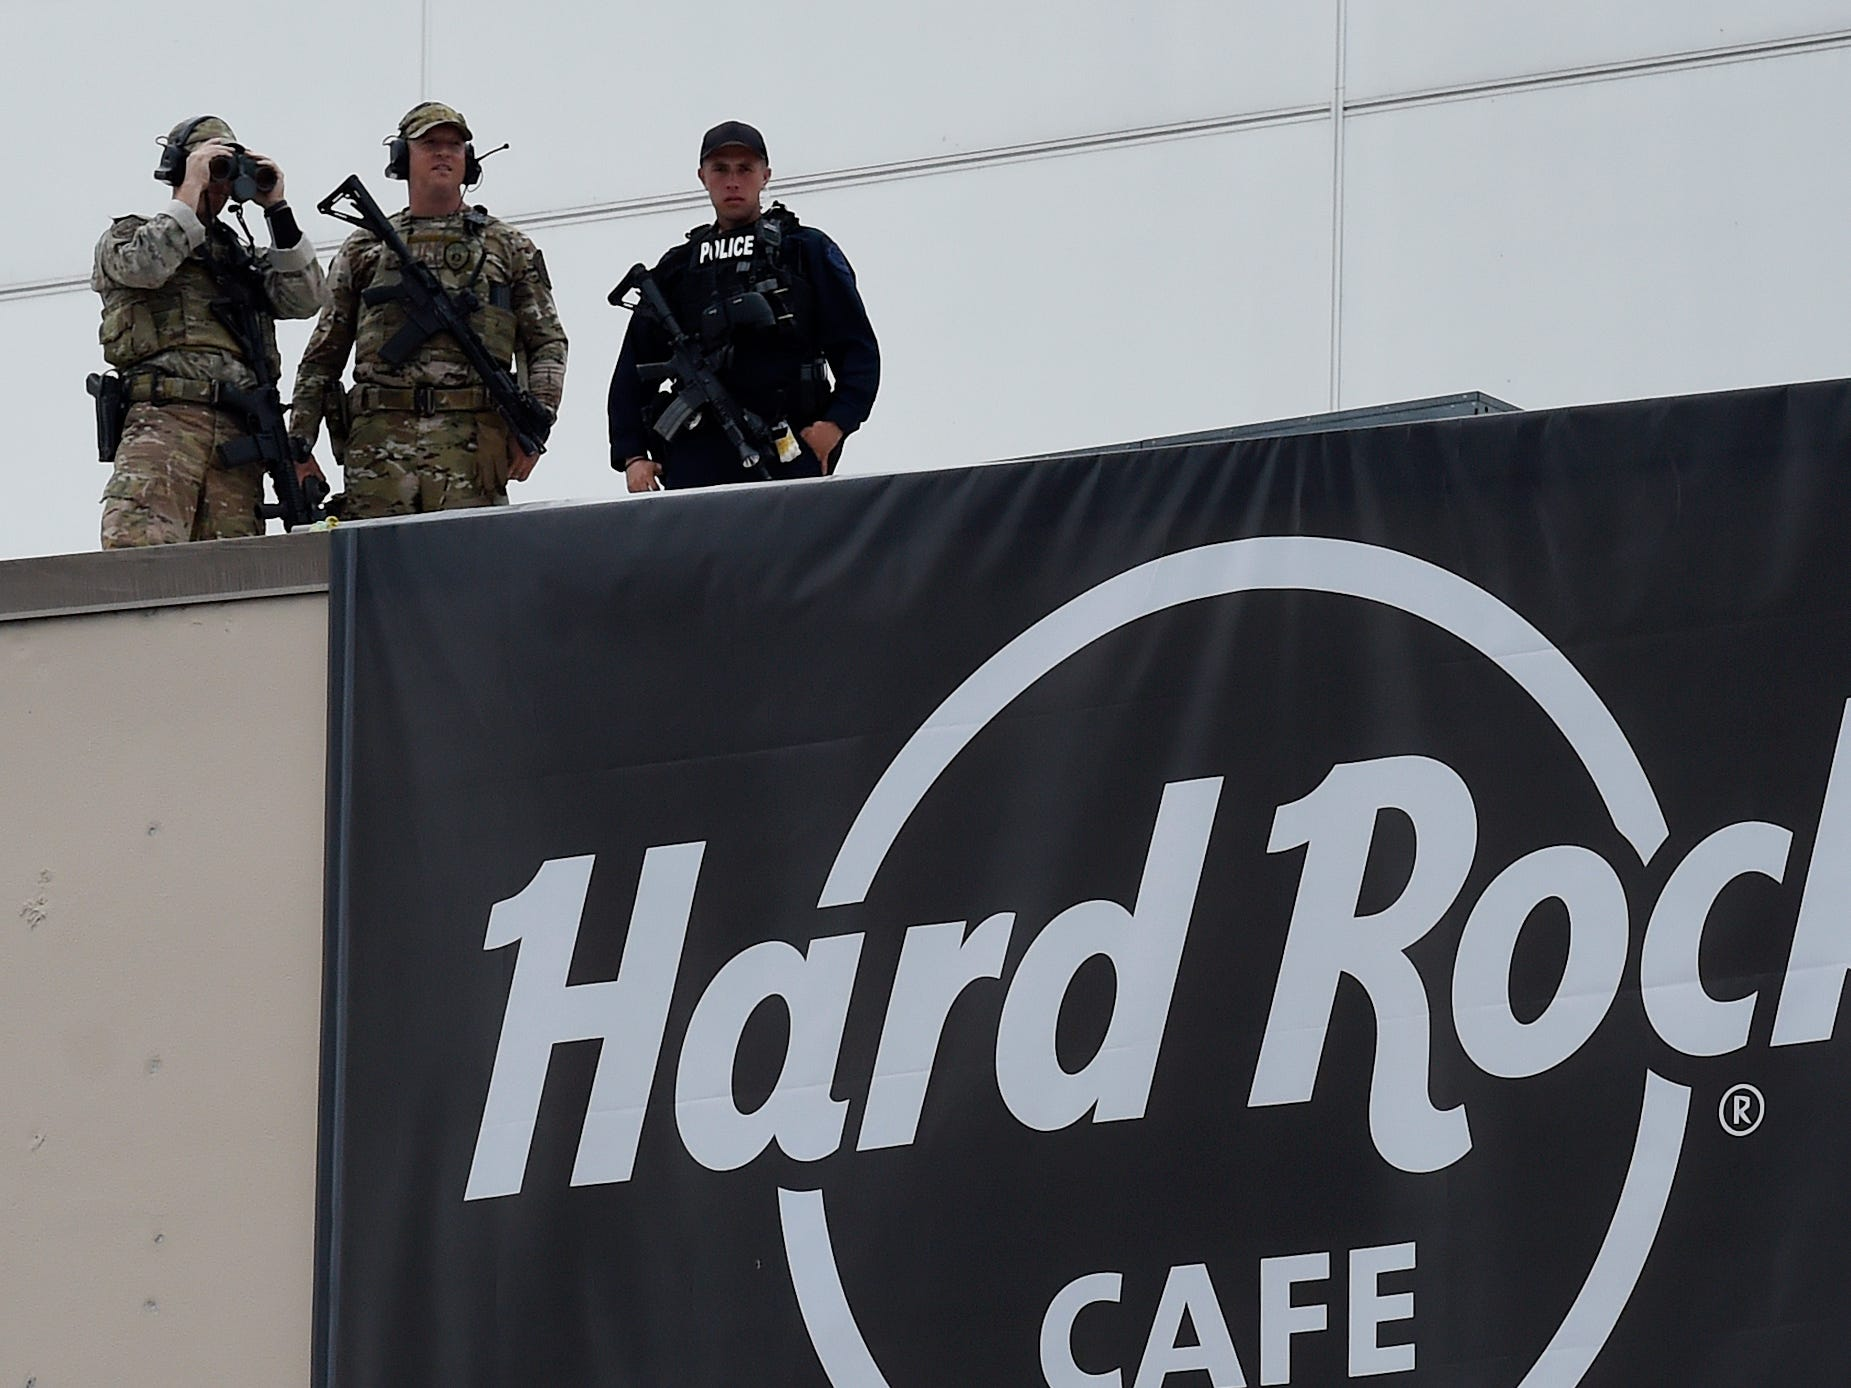 Nashville Metro police and SWAT officers watch from the Hard Rock Cafe during the NFL Draft on Thursday, April 25, 2019, in Nashville, Tenn.